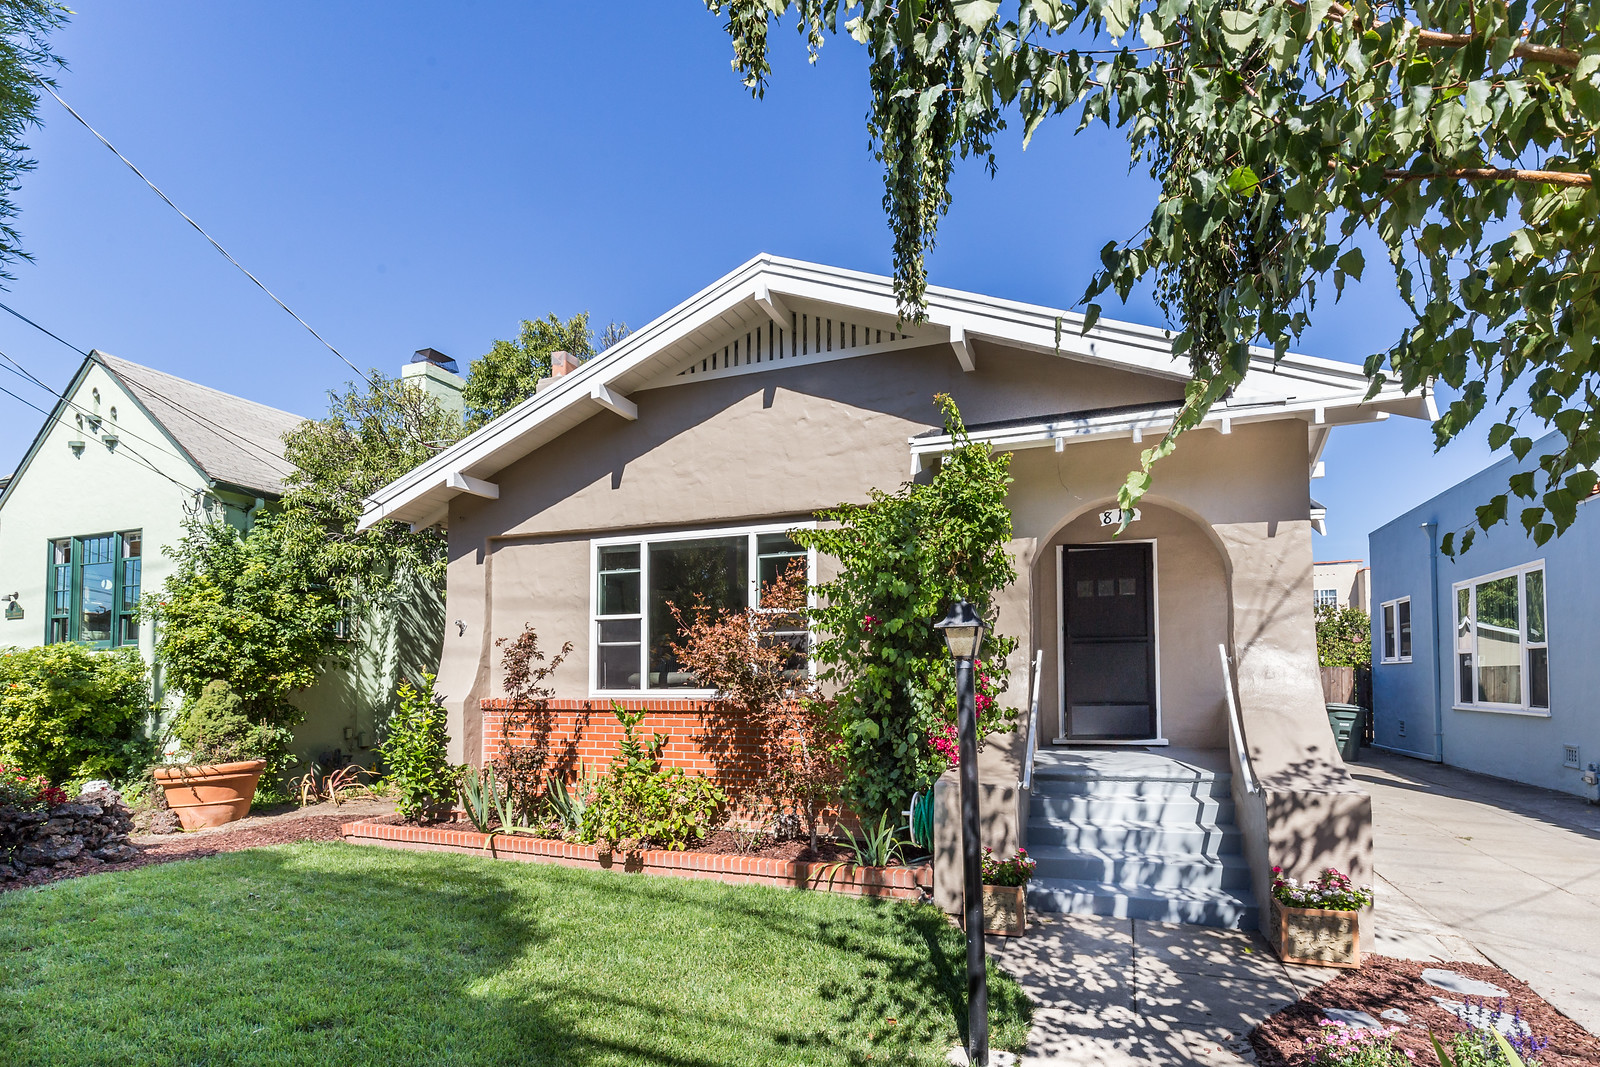 819 s humboldt st charming home in san mateo